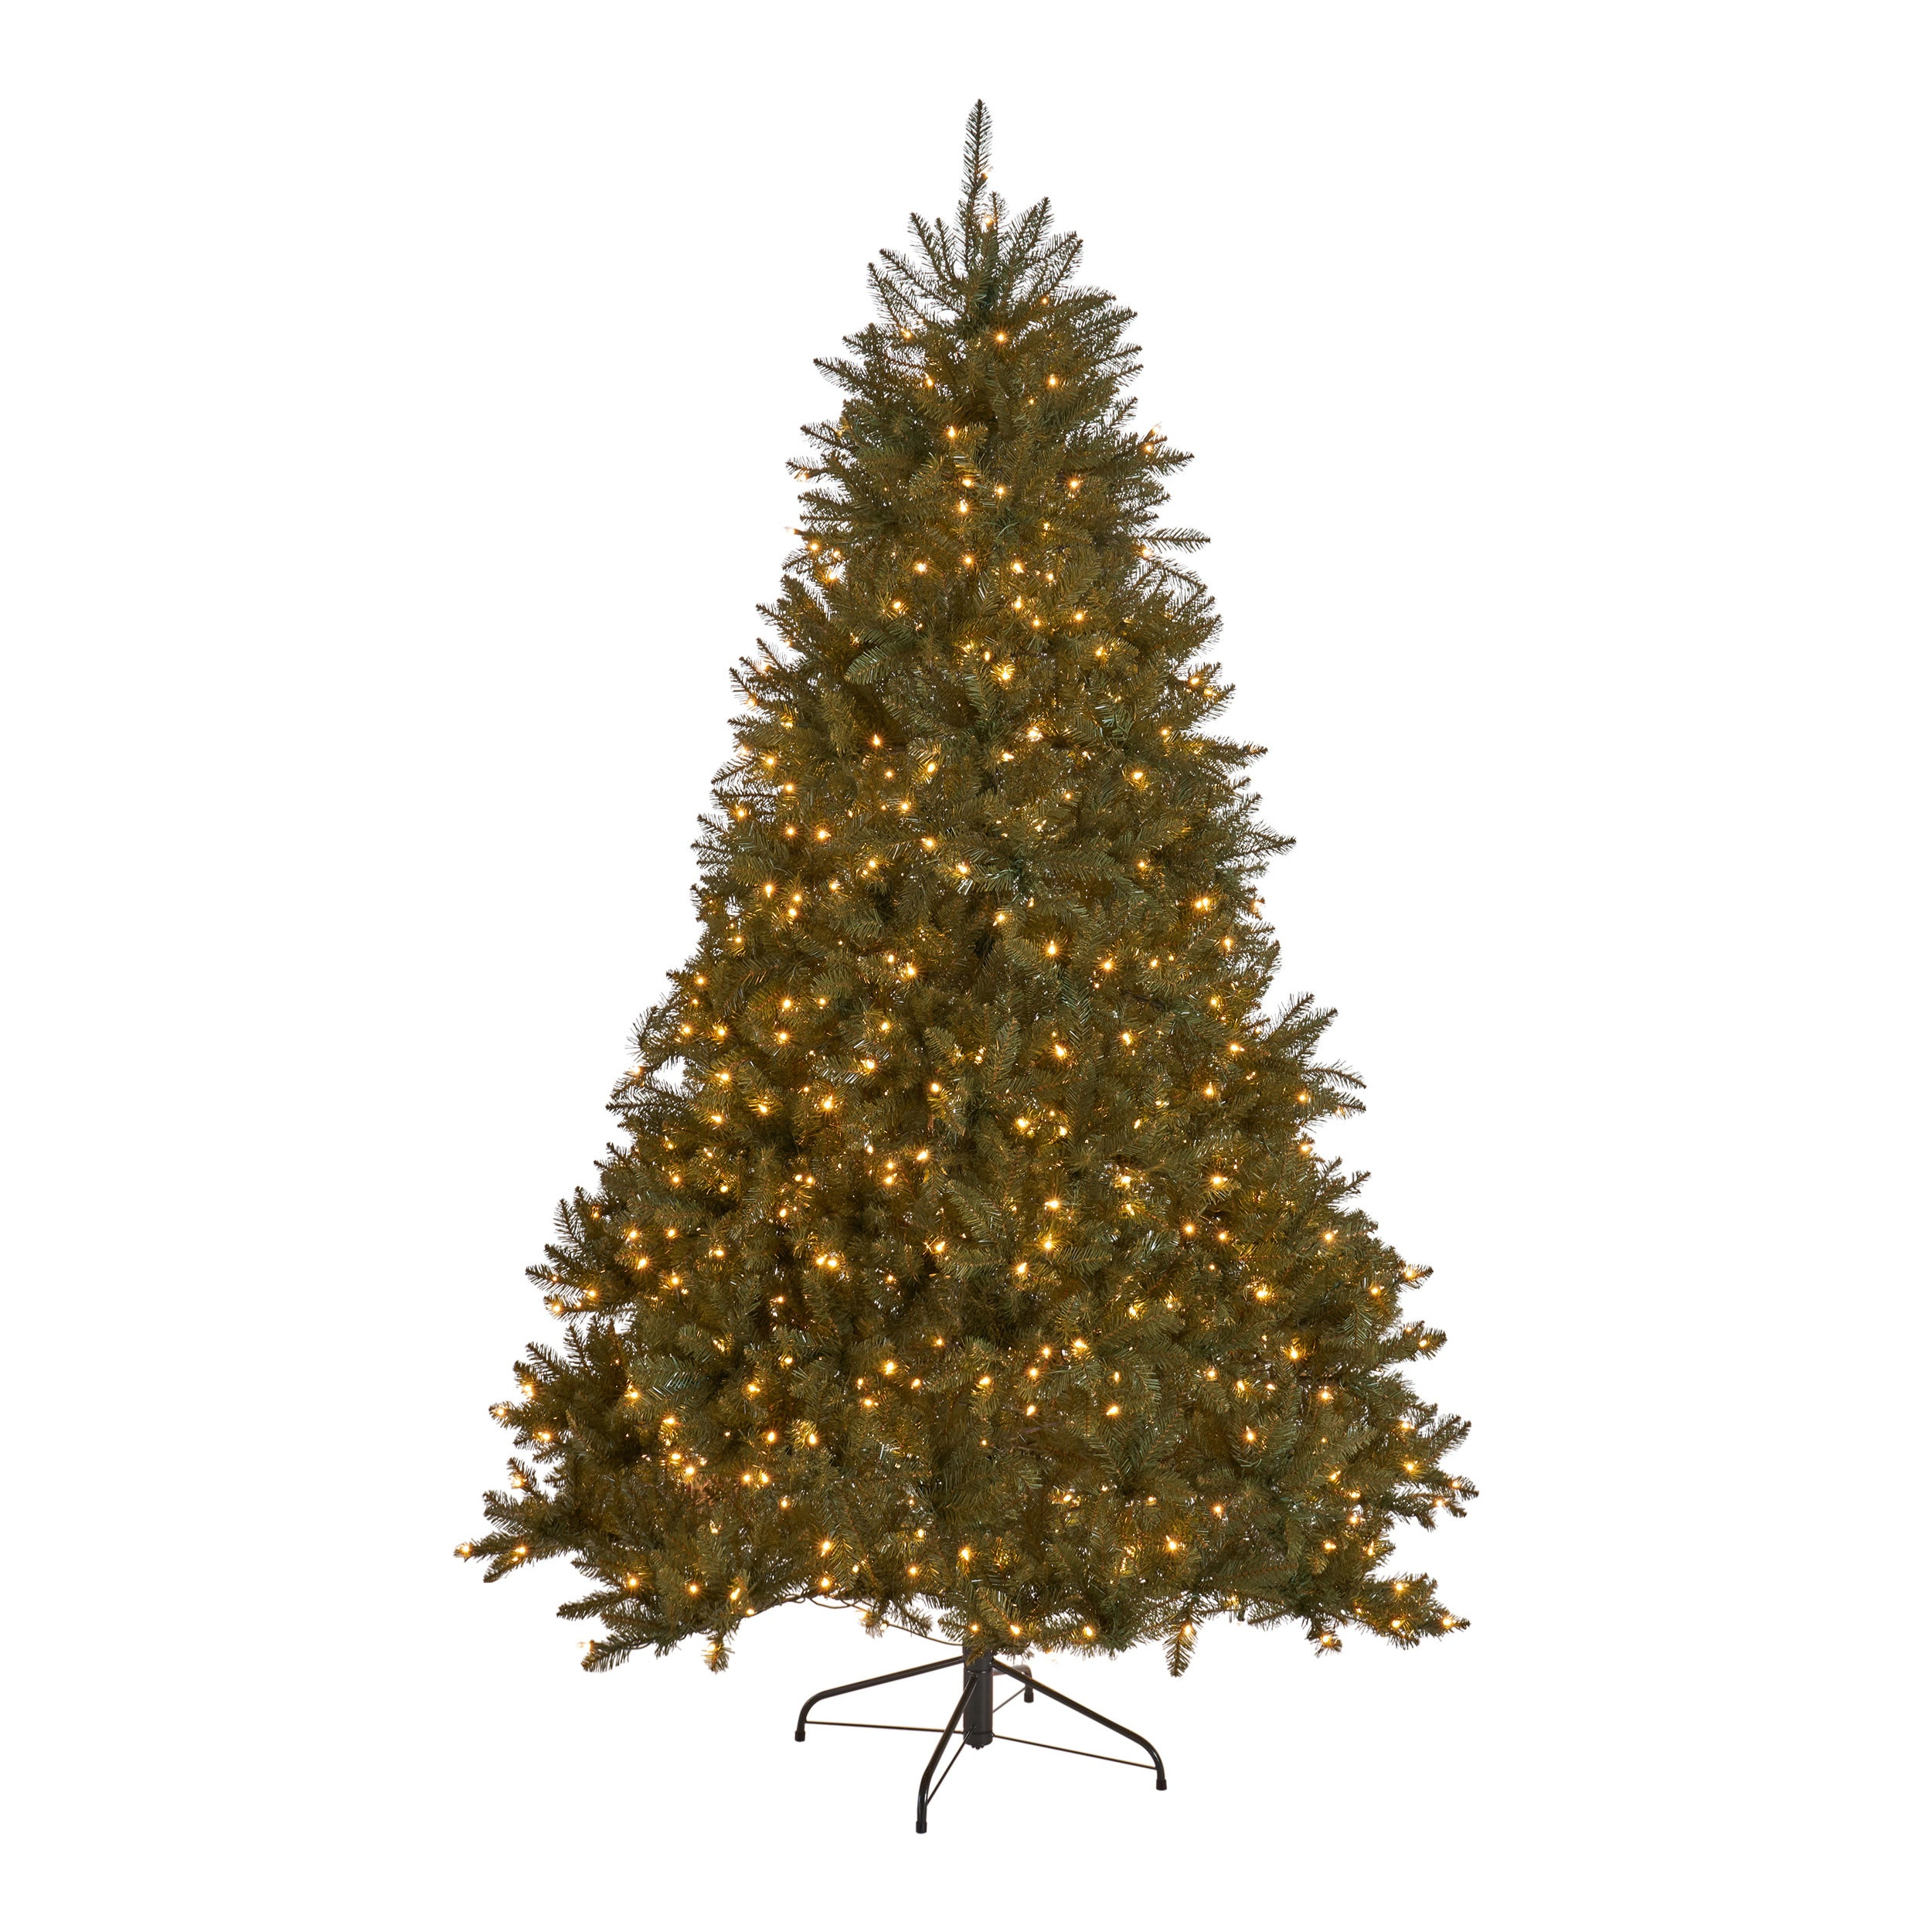 7 foot Fraser Fir Hinged Artificial Christmas Tree Multicolor Light